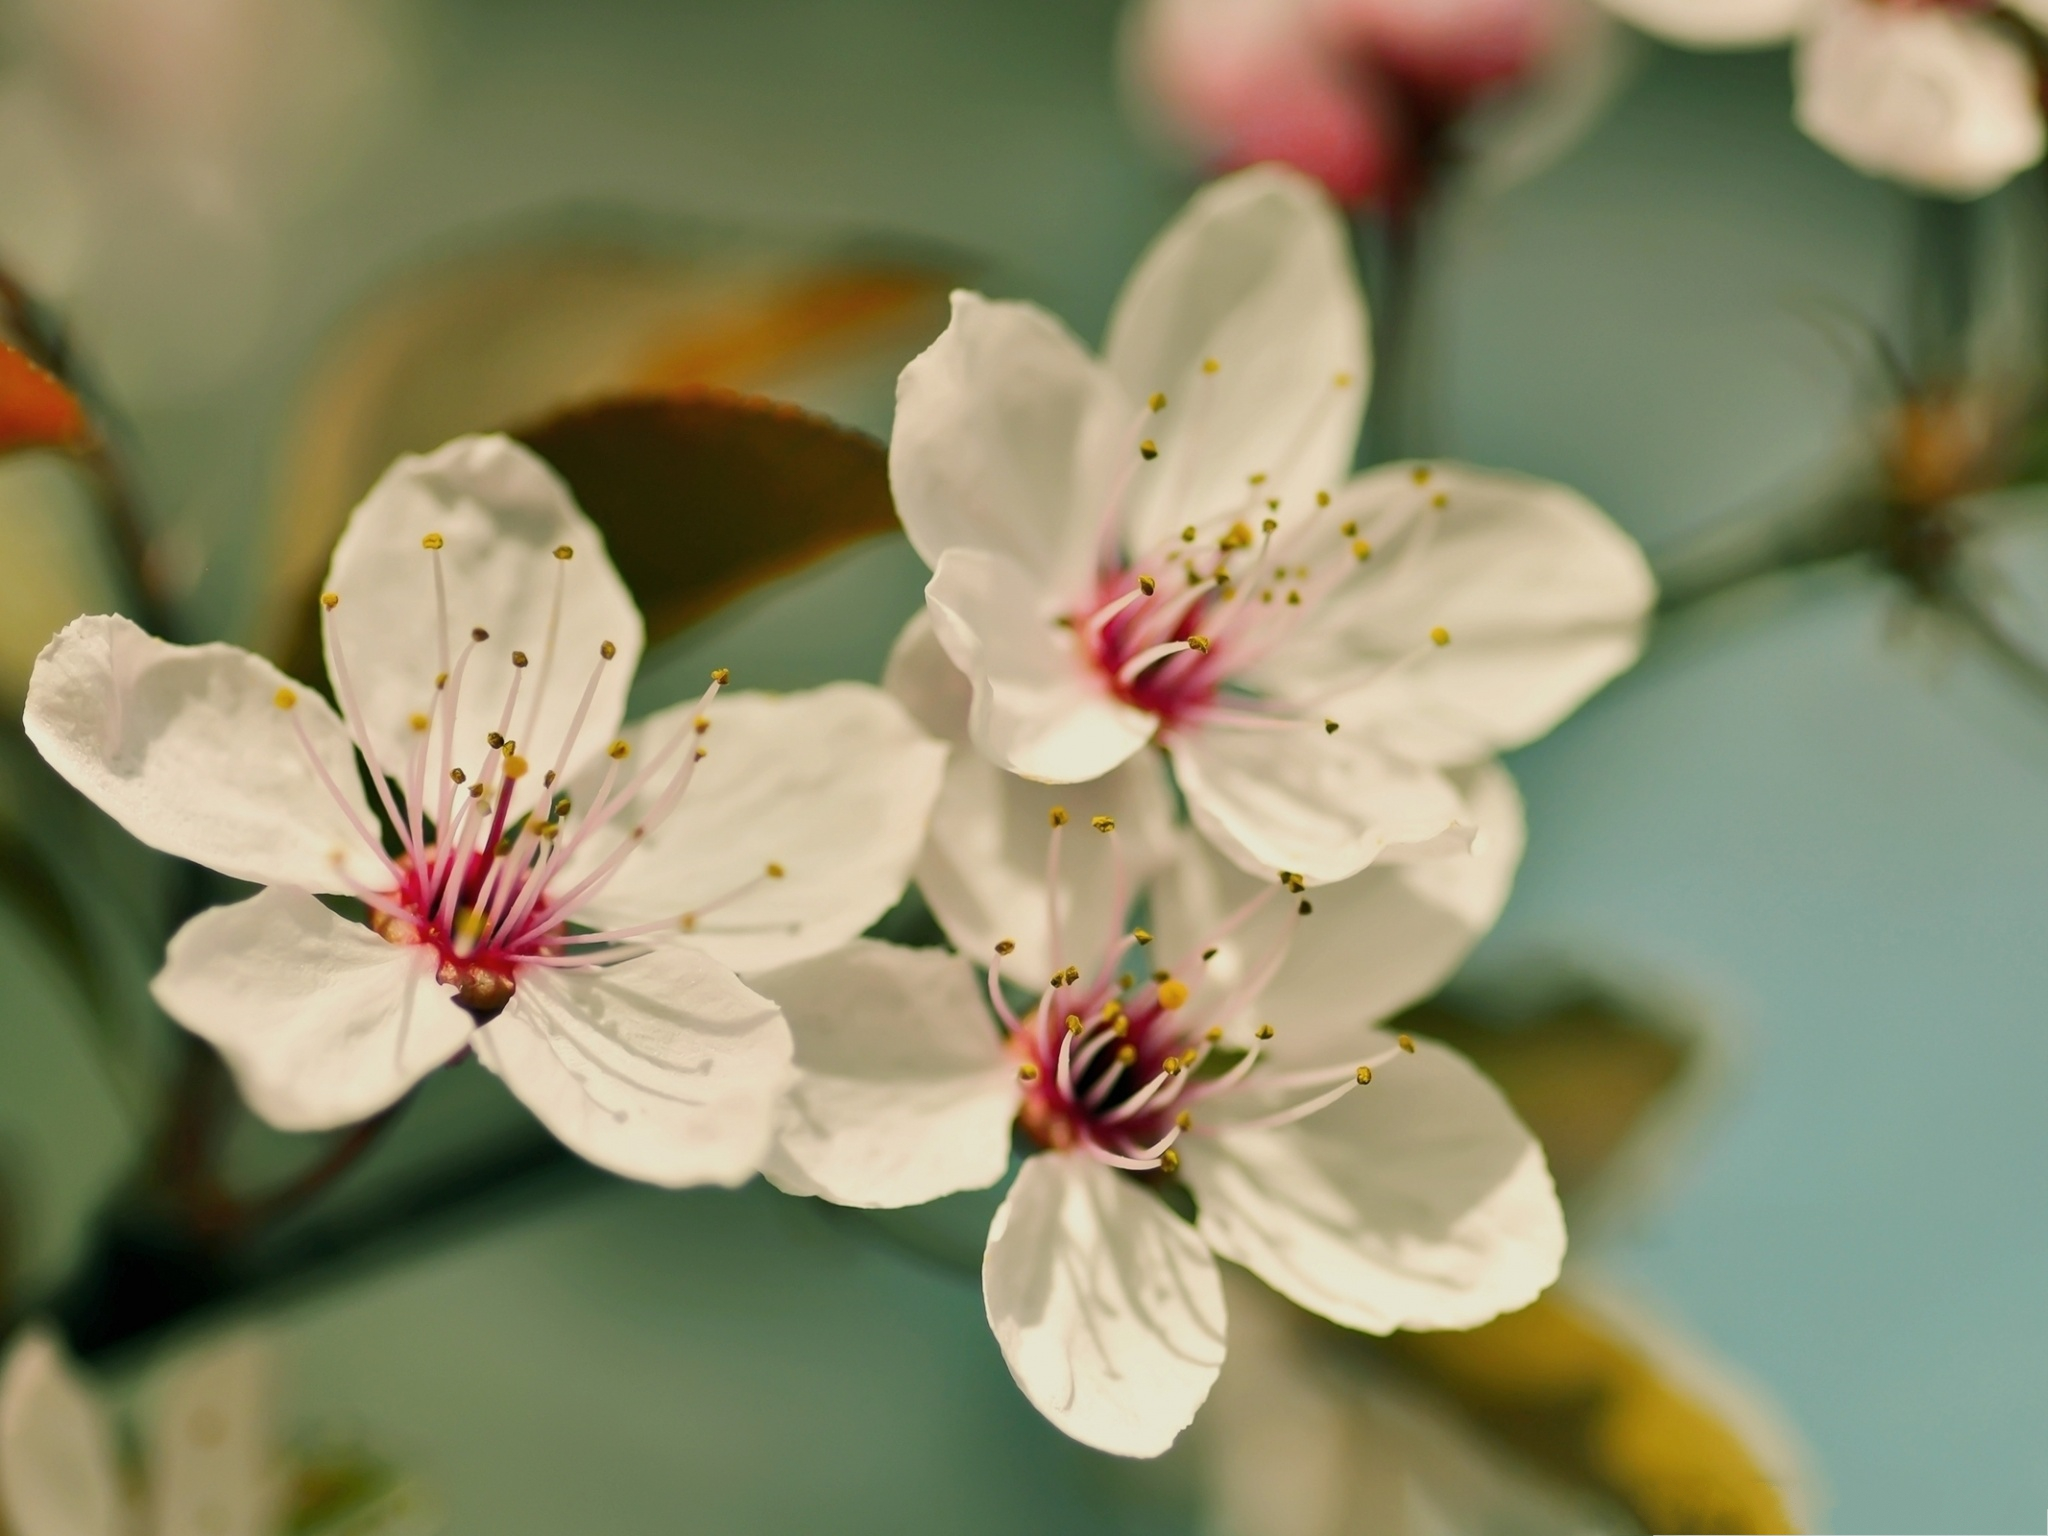 click to free download the wallpaper--Cherry Flowers Photography, White Cherries on Green Thin Branch, Fresh Scene 2048X1536 free wallpaper download